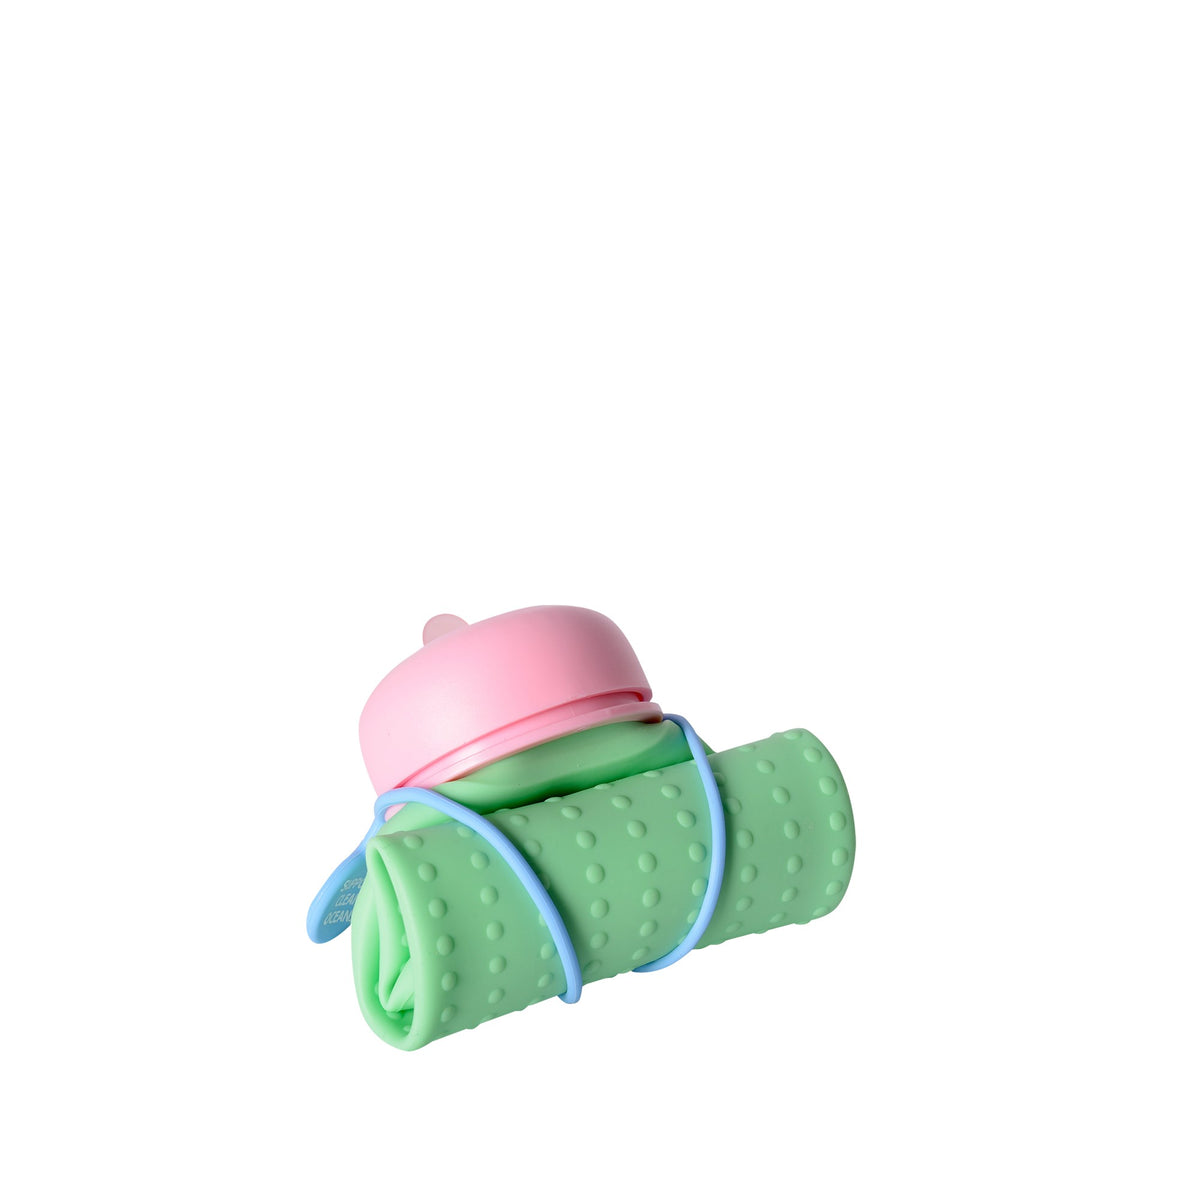 Rolla Bottle - Mint, Pink, Dusty Blue